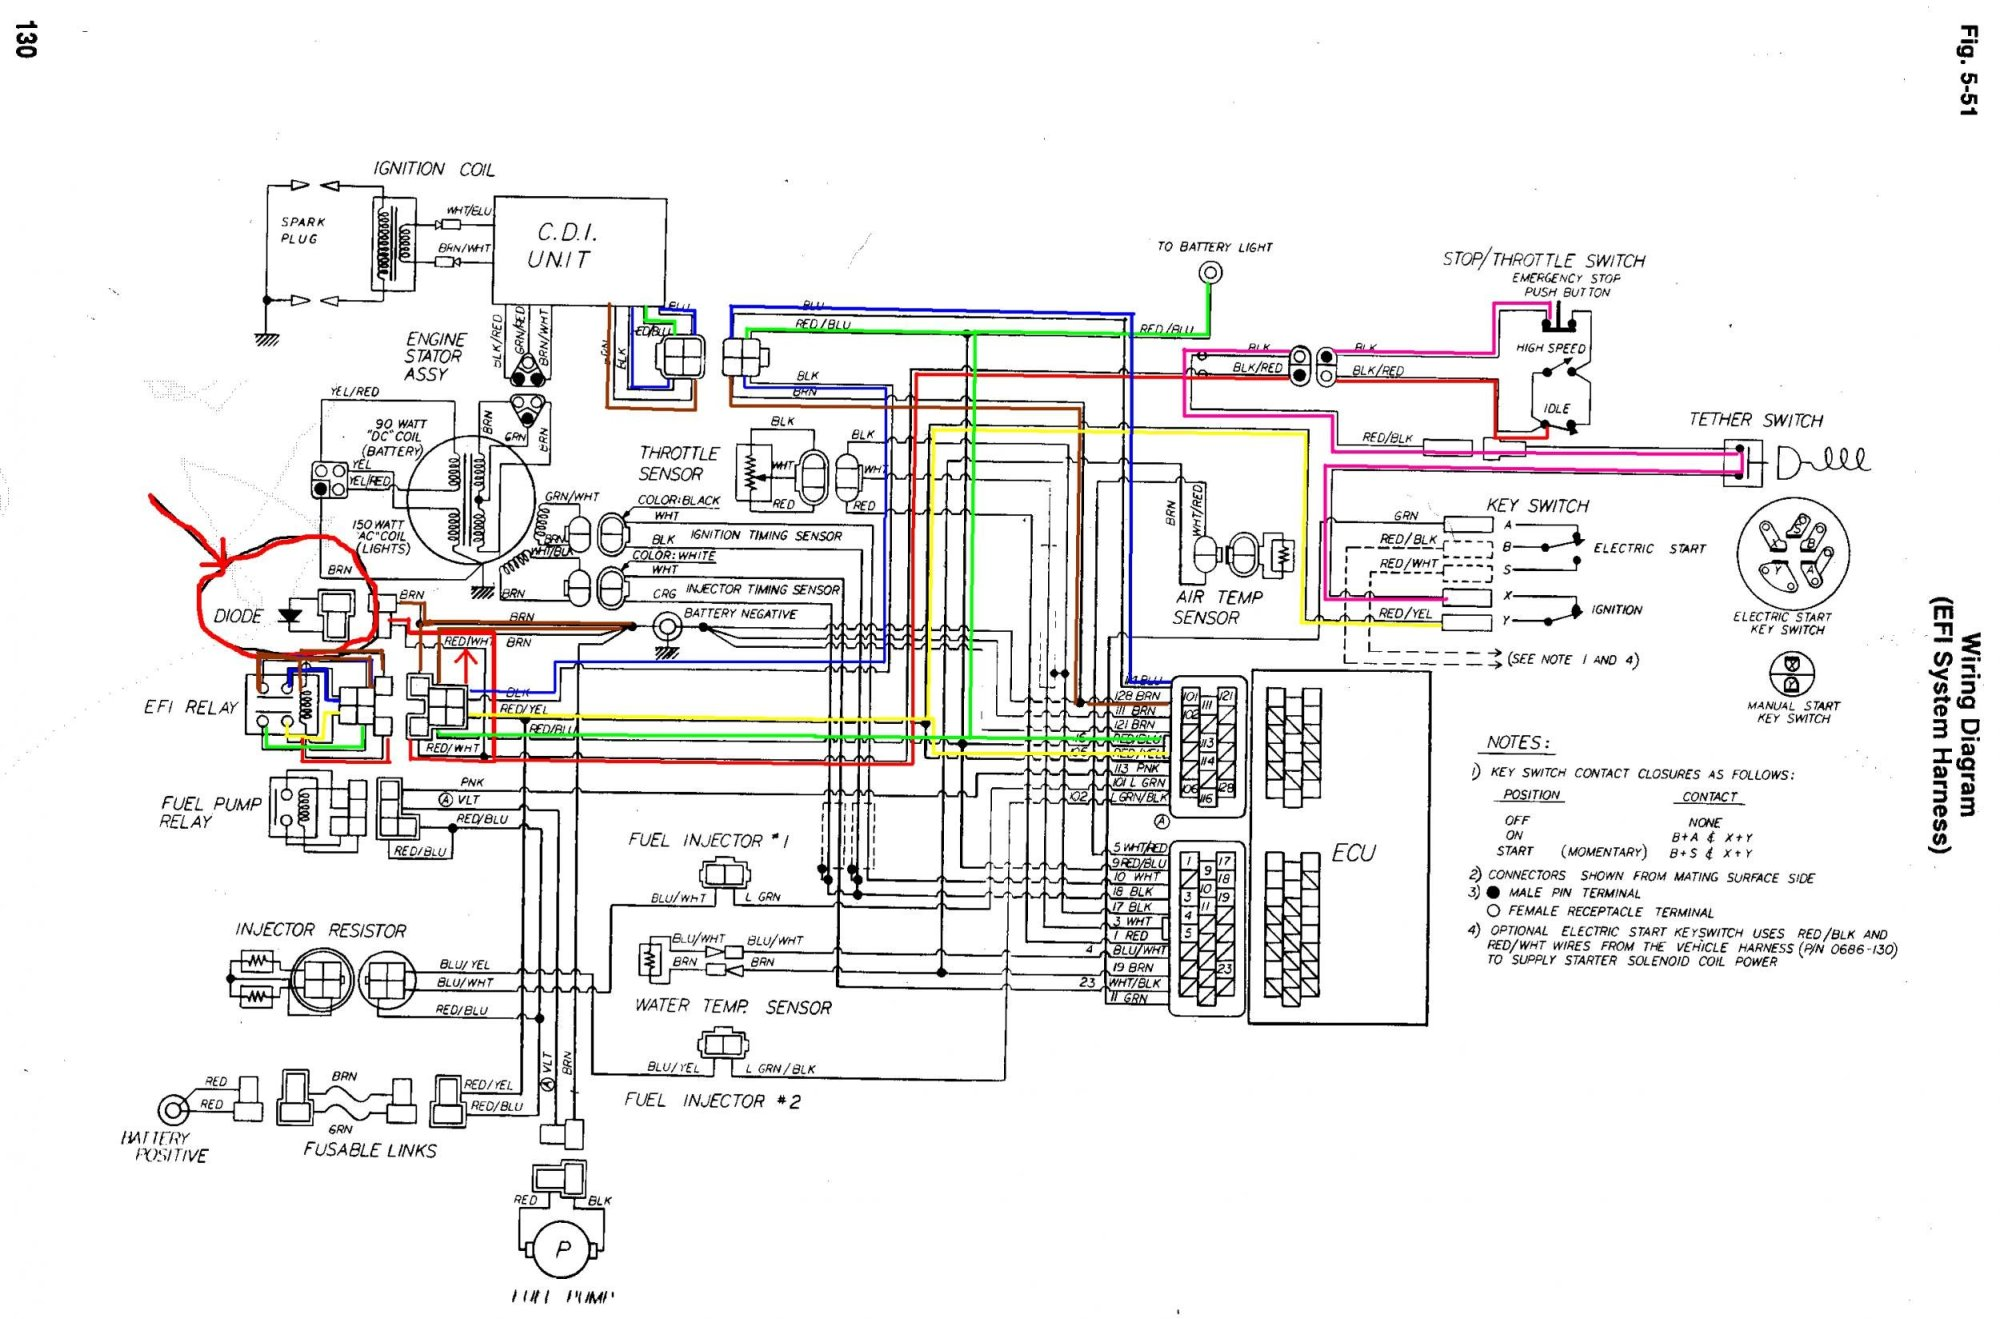 hight resolution of wiring diagram for suzuki quadrunner wiring diagram used 1989 suzuki quadrunner 250 wiring diagram suzuki quadrunner wiring diagram